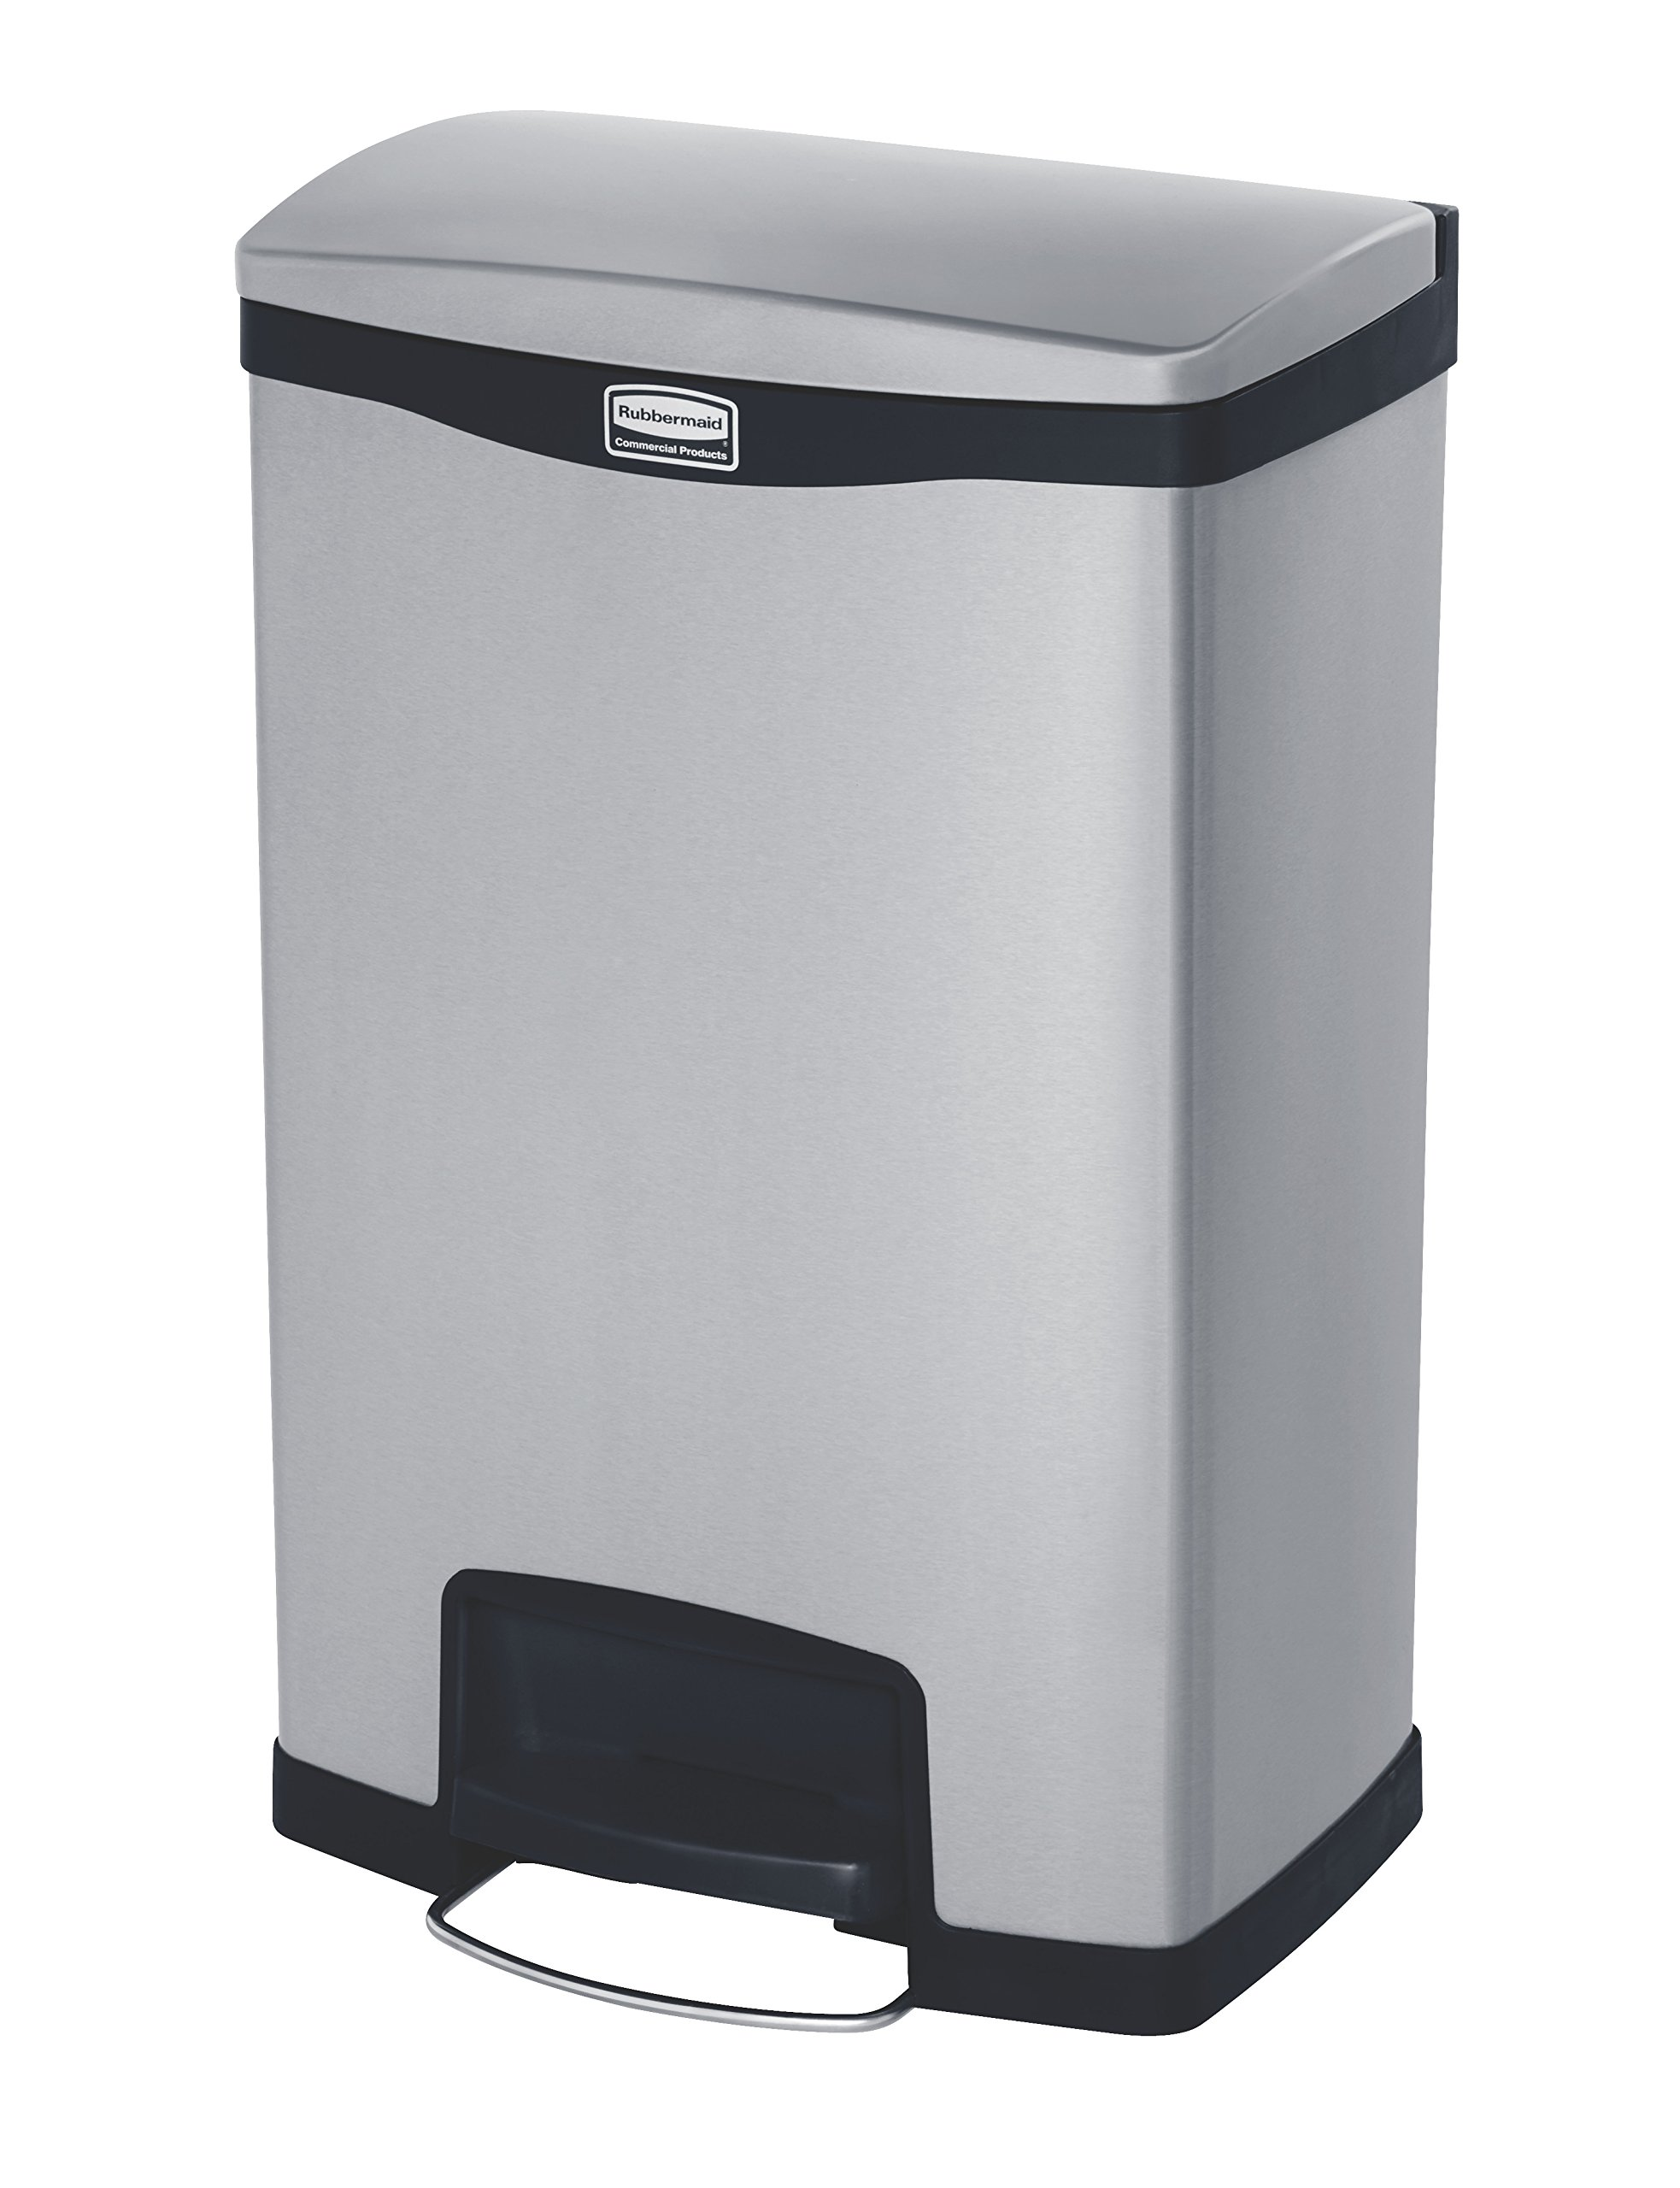 Rubbermaid Commercial Slim Jim Front Step-On Trash Can, Stainless Steel, 13 Gallon, Black (1901992)